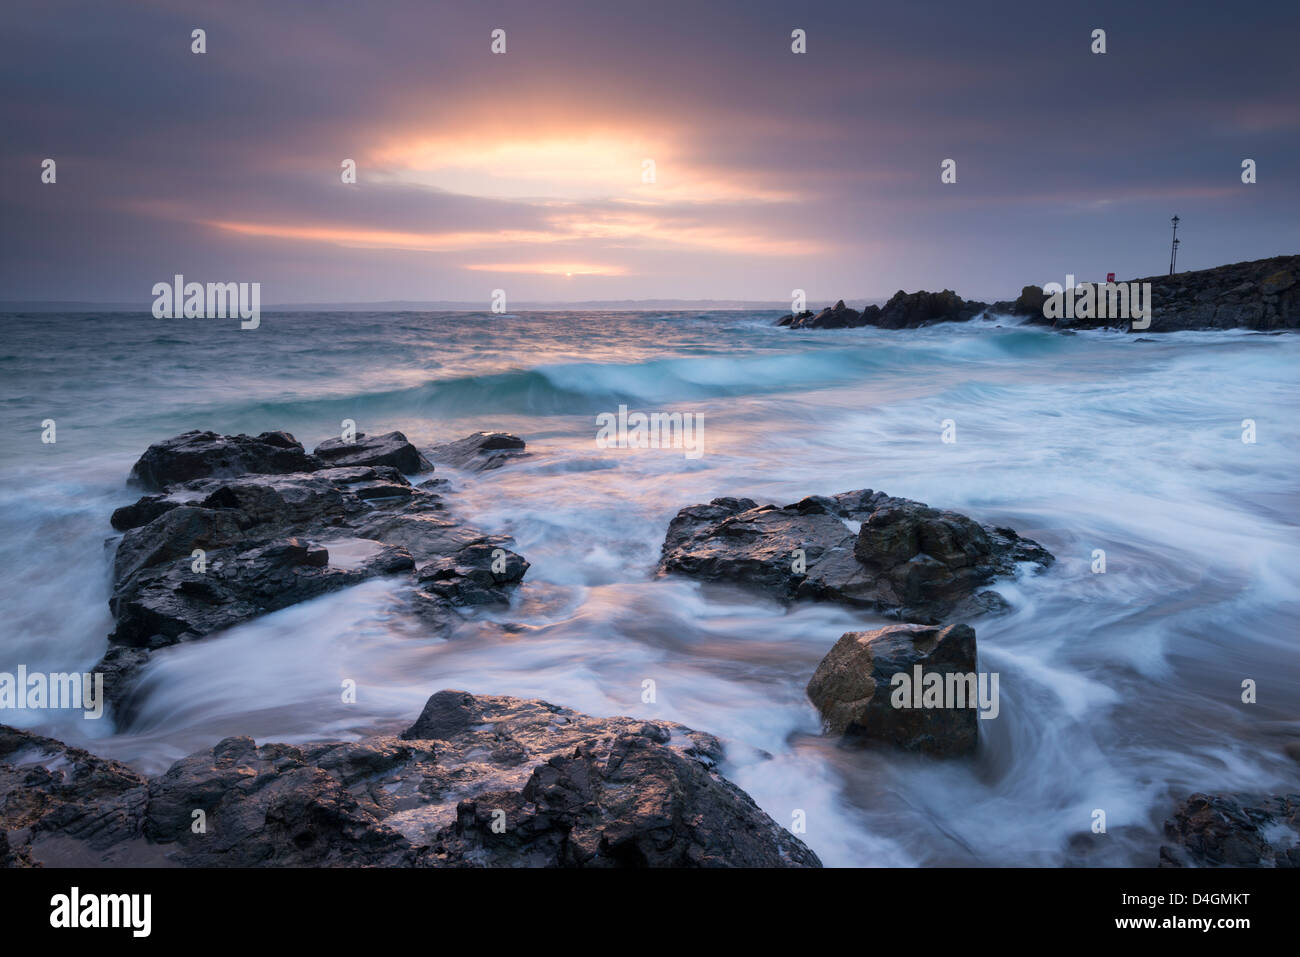 Sunrise at Porthgwidden Beach in St Ives, Cornwall, England. Winter (March) 2013. - Stock Image